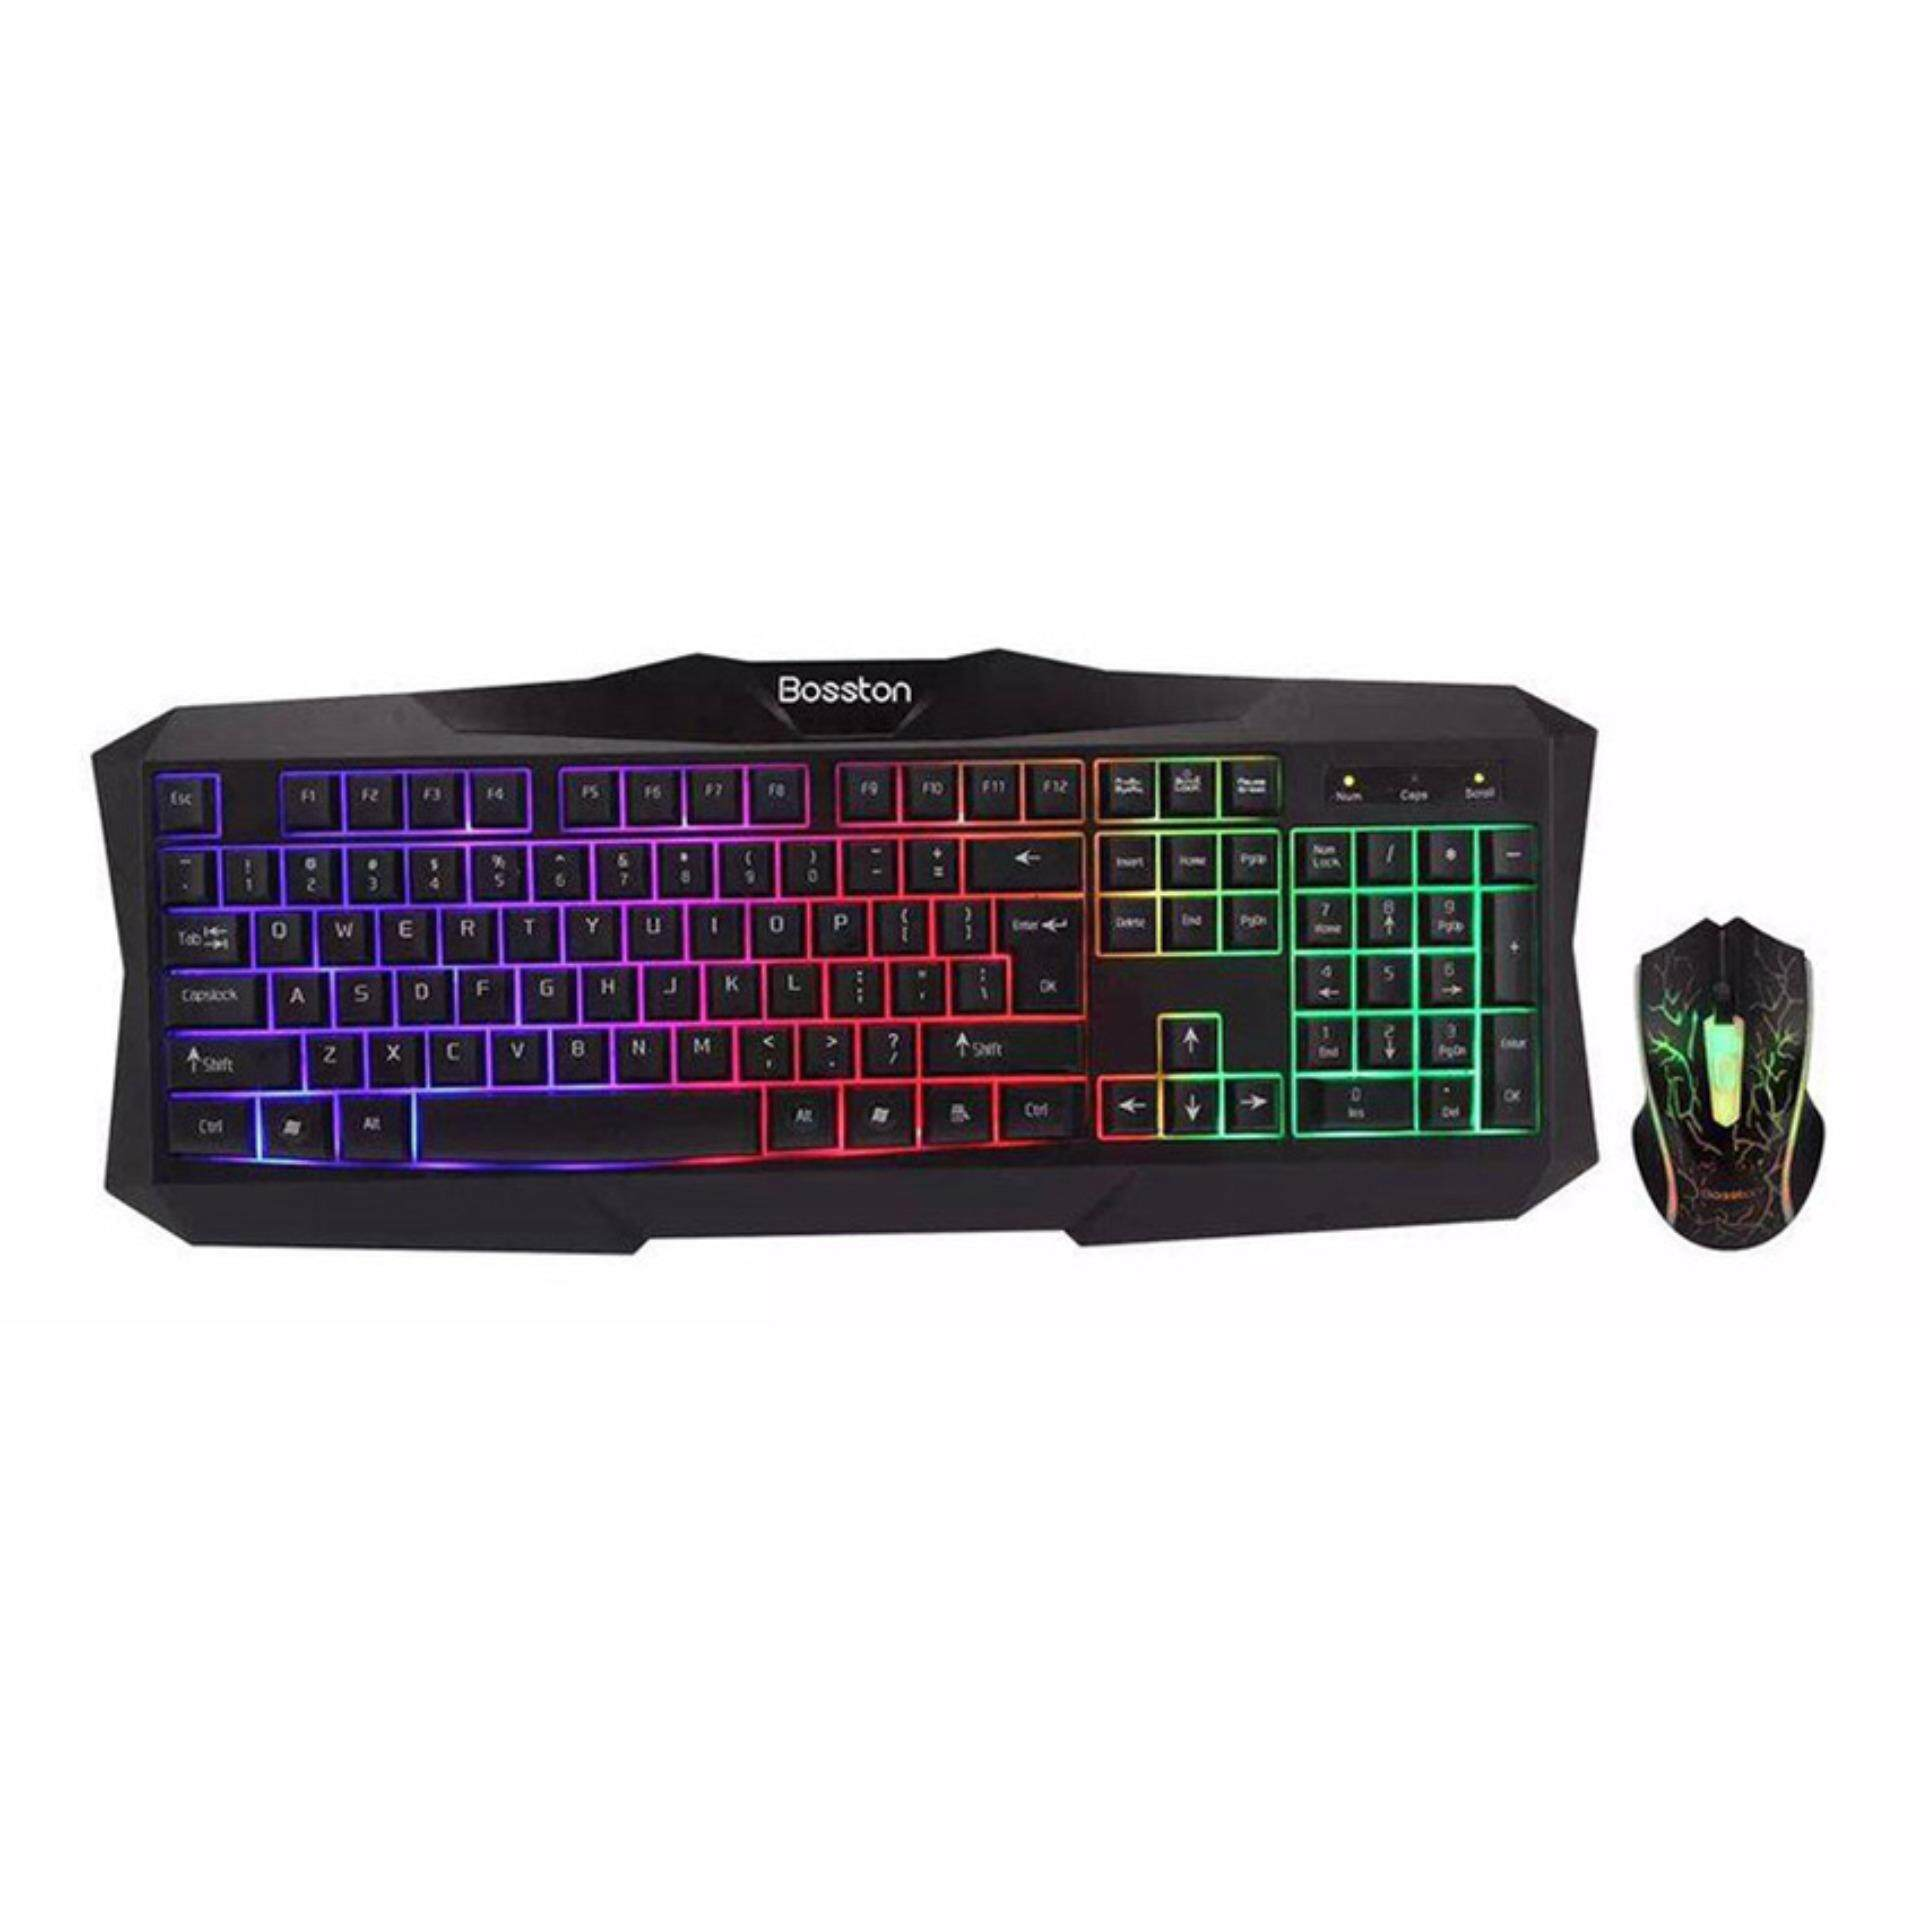 BOSSTON K/B + MOUSE GAMING [ 837 ] COLORFULL LIGHTING